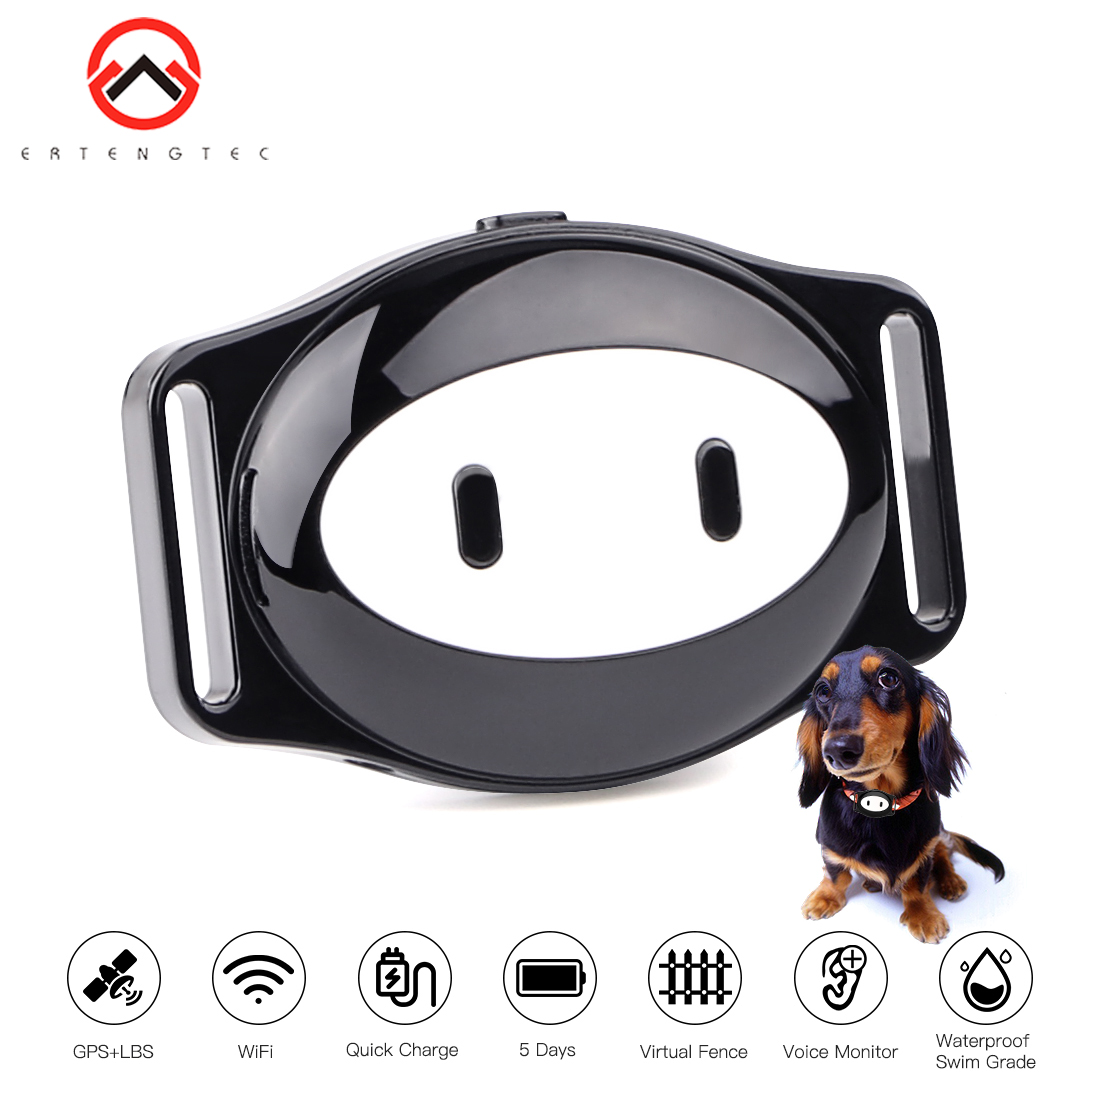 Pet Tracker Waterproof IP68 Collar Dog GPS WiFi Realtime Tracking Remote Voice Call Geo fence Longtime